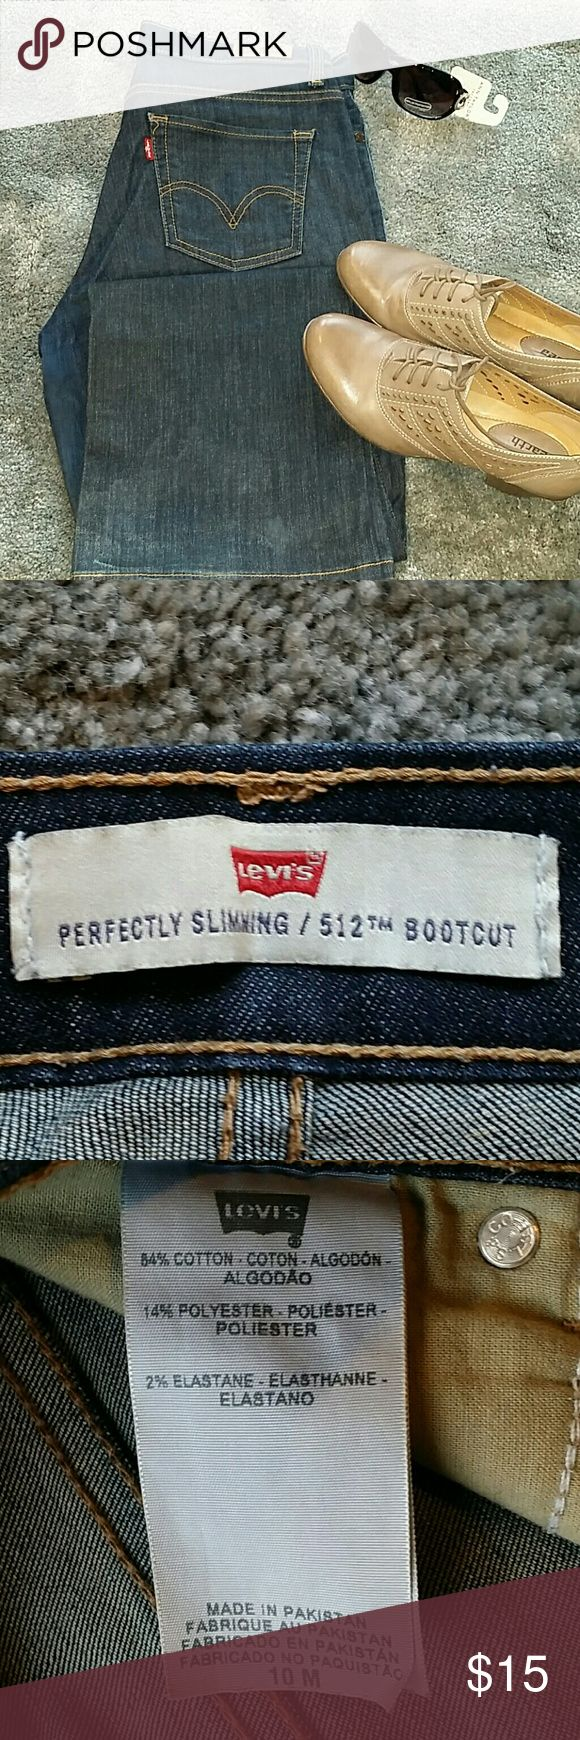 Levis 512 boot cut jeans 10M From perfectly slimming series, boot cut jeans, gently worn, No trades ?? Discount with bundles Levi's Pants Boot Cut & Flare